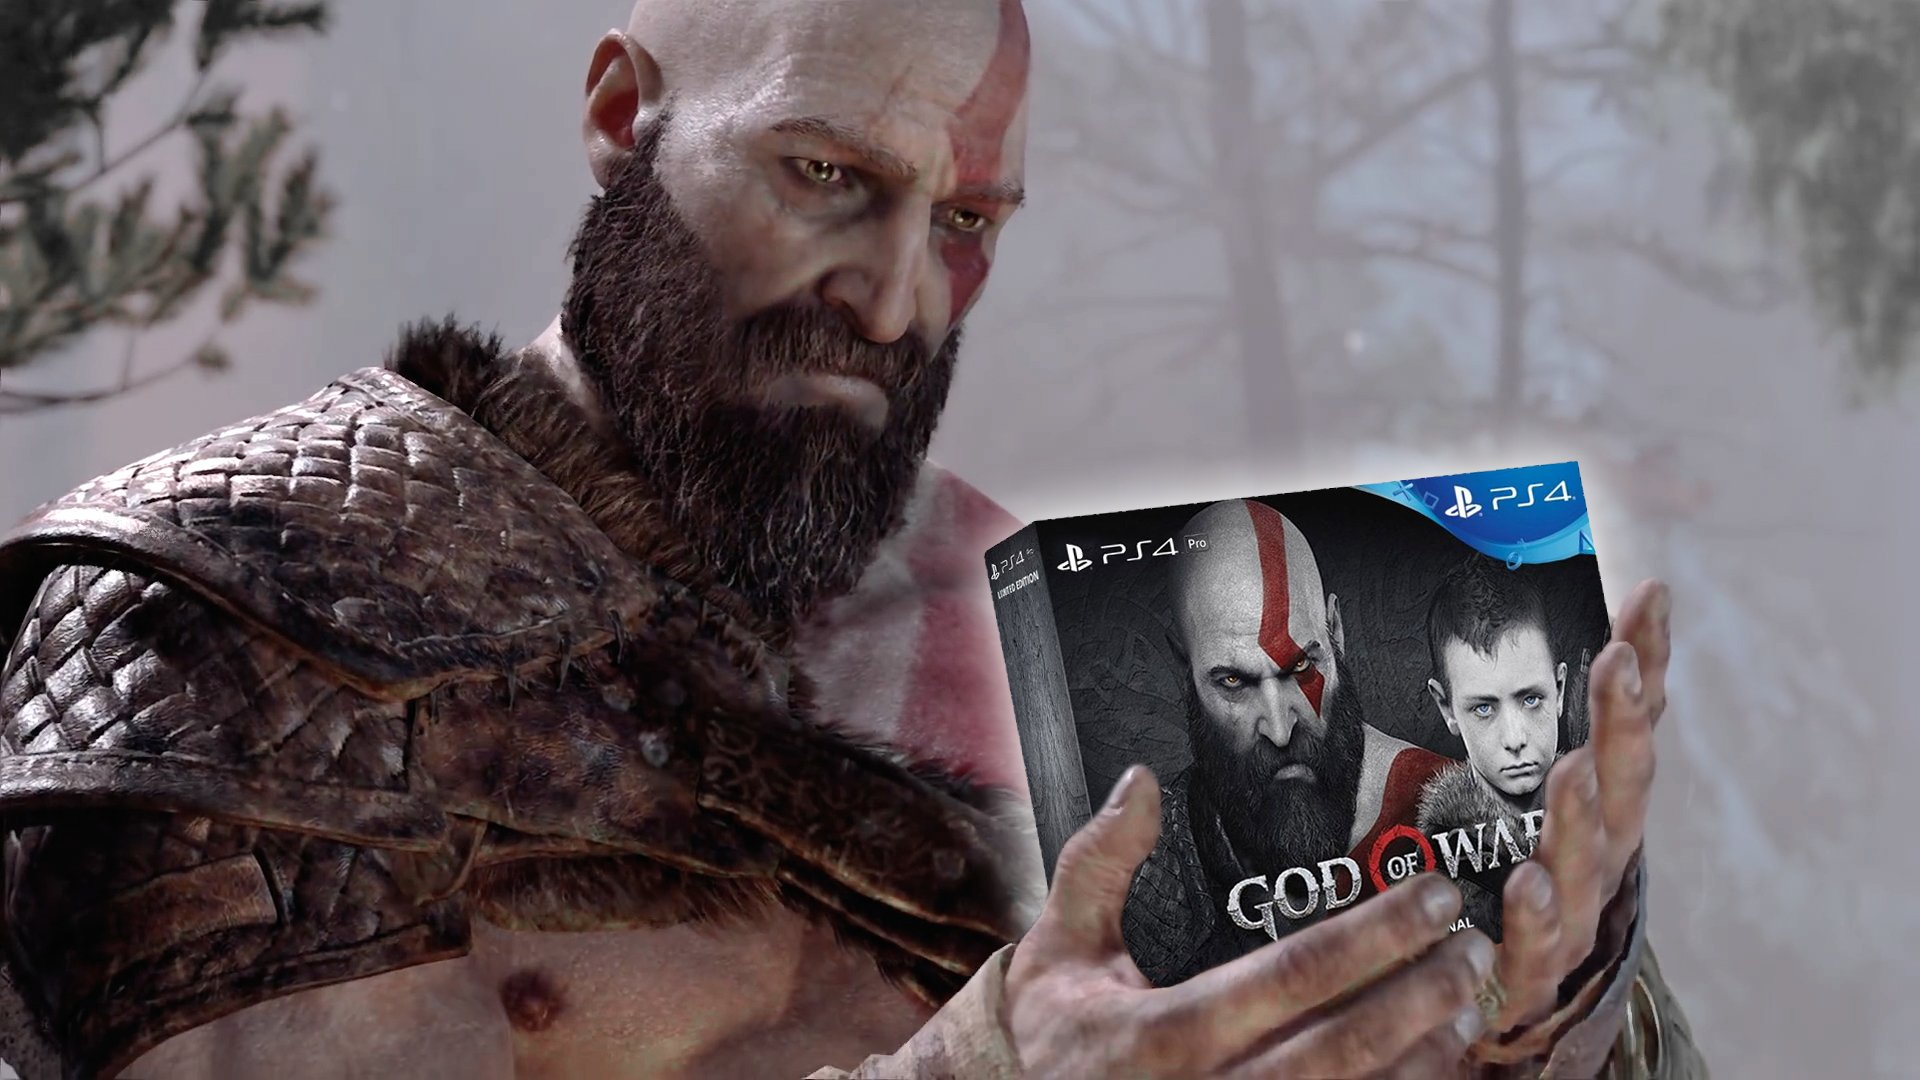 """Pubg Ps4 Release Date Price Revealed Preorder Bundles: Latest Sony Revealed """"God Of War"""" PS4 Pro Bundle Limited"""